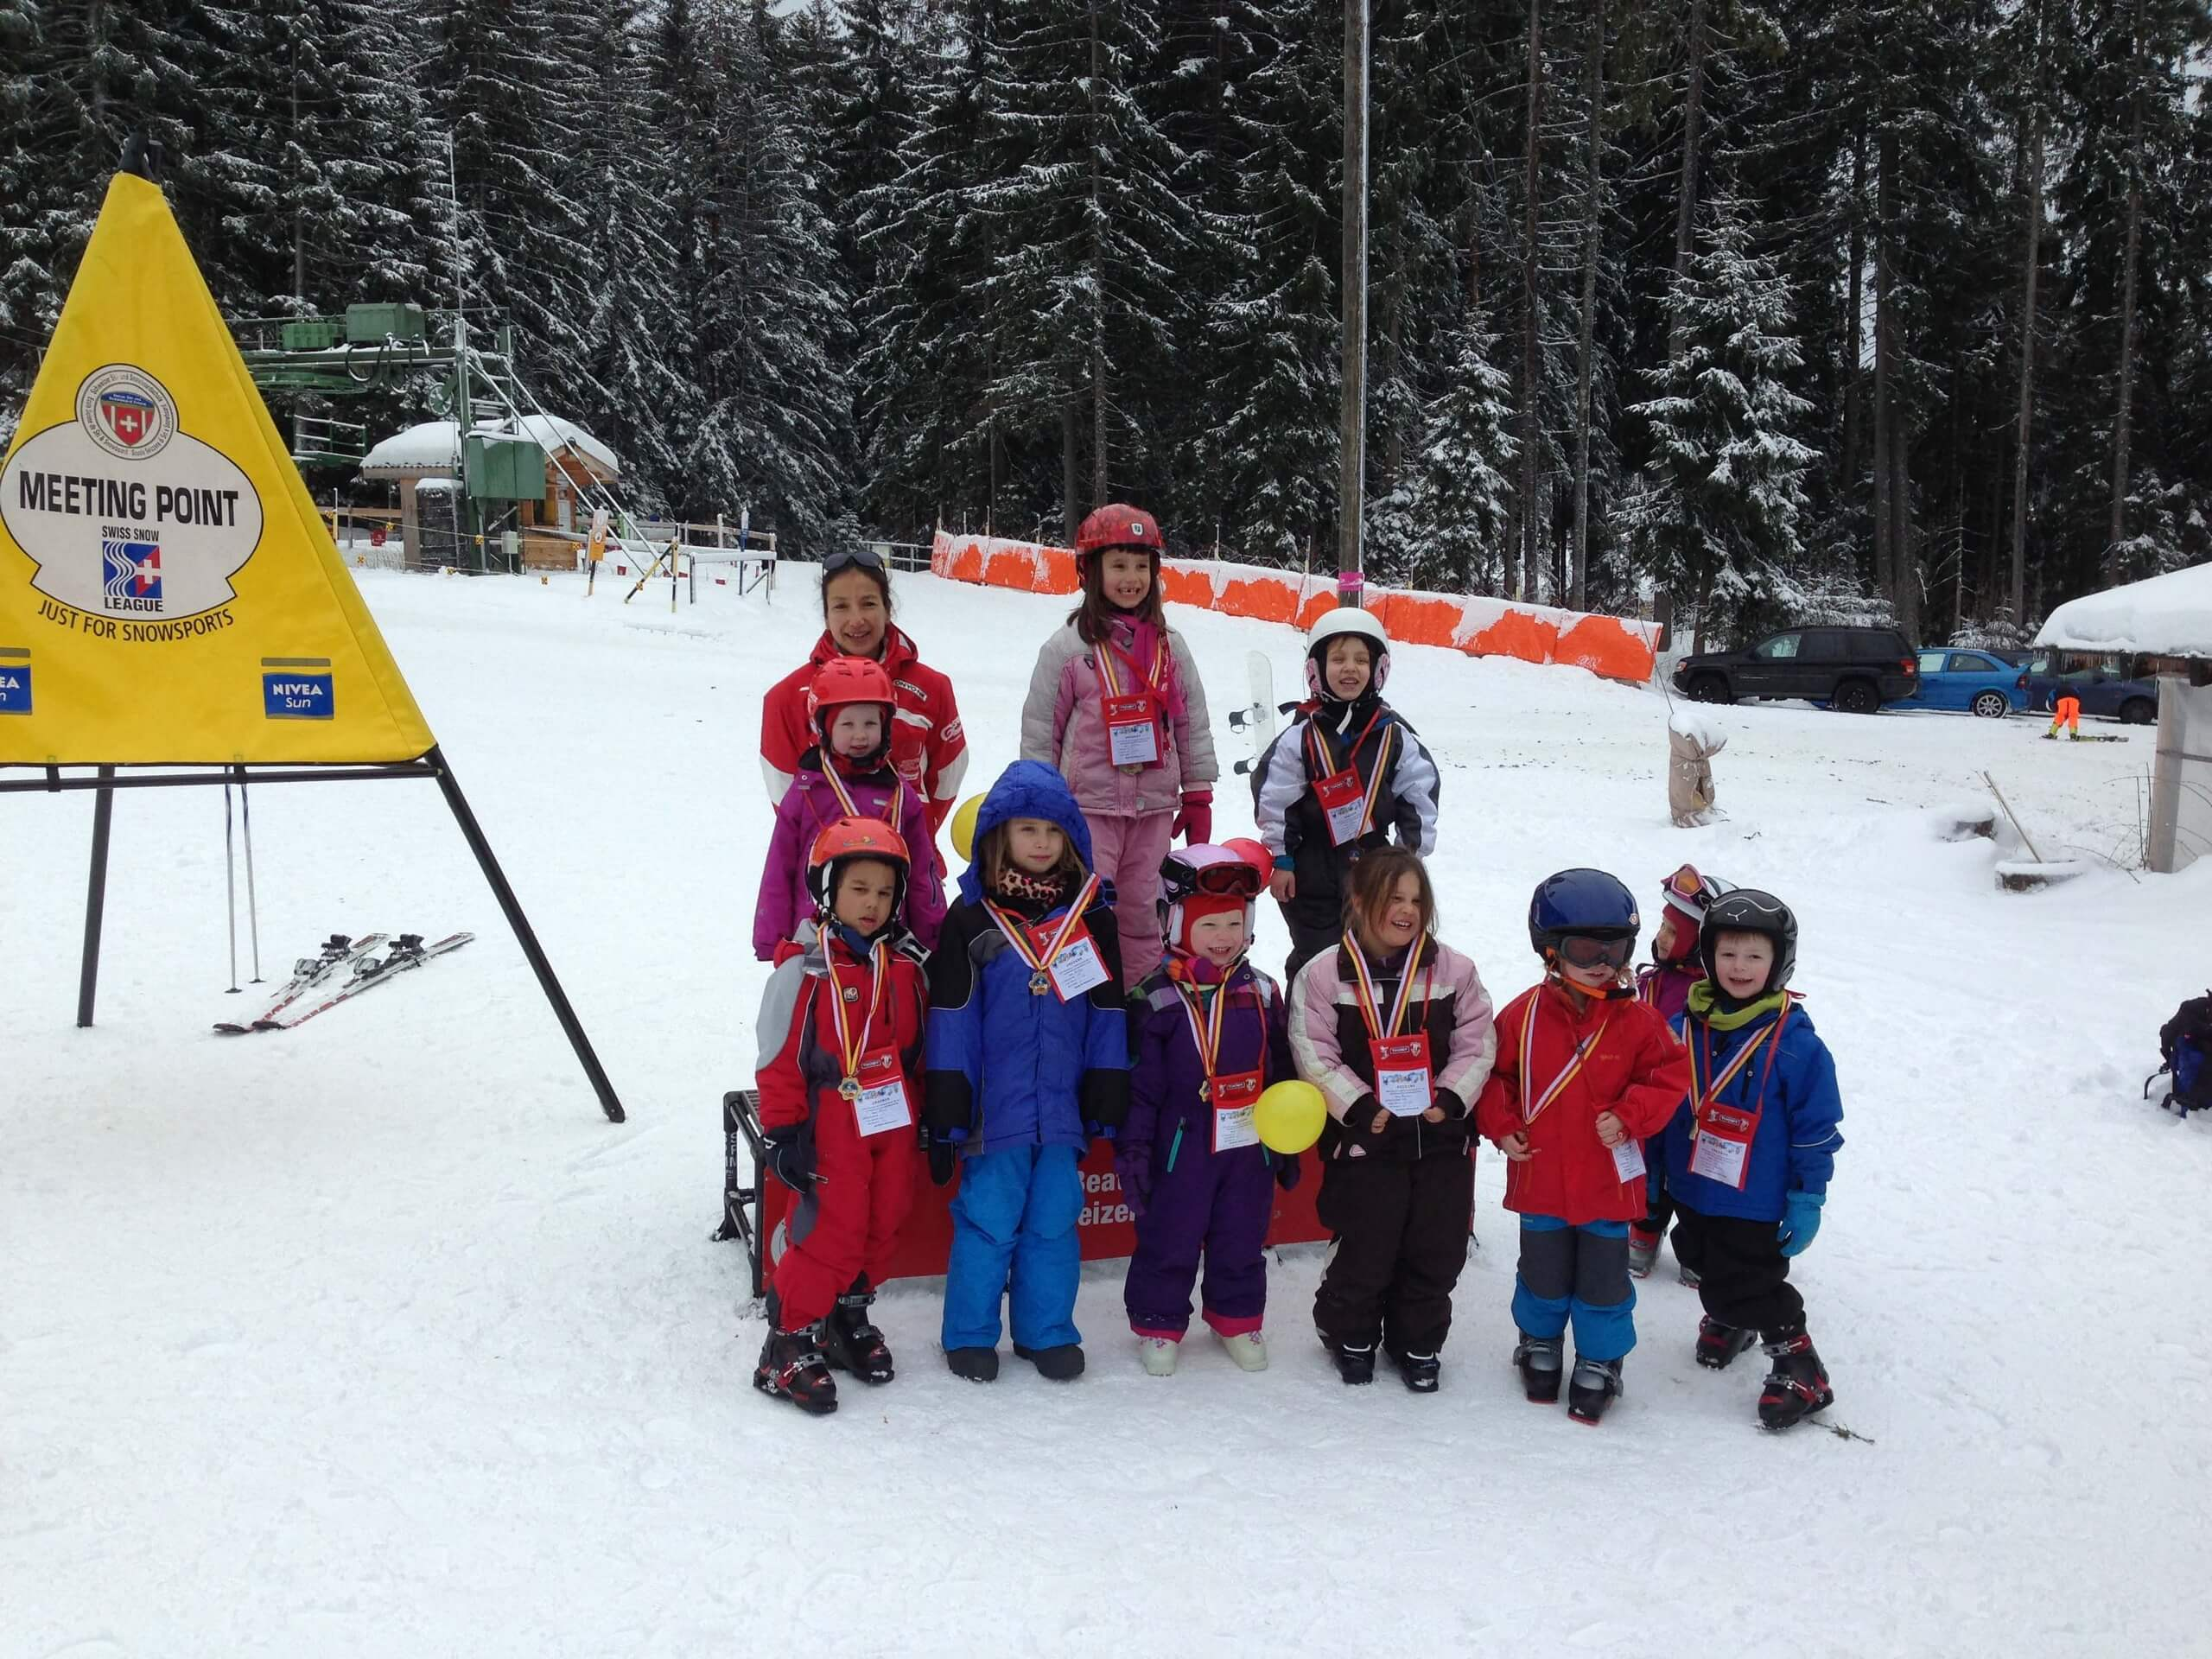 beatenberg-skischule-kinder-winter-pisten-wintersport